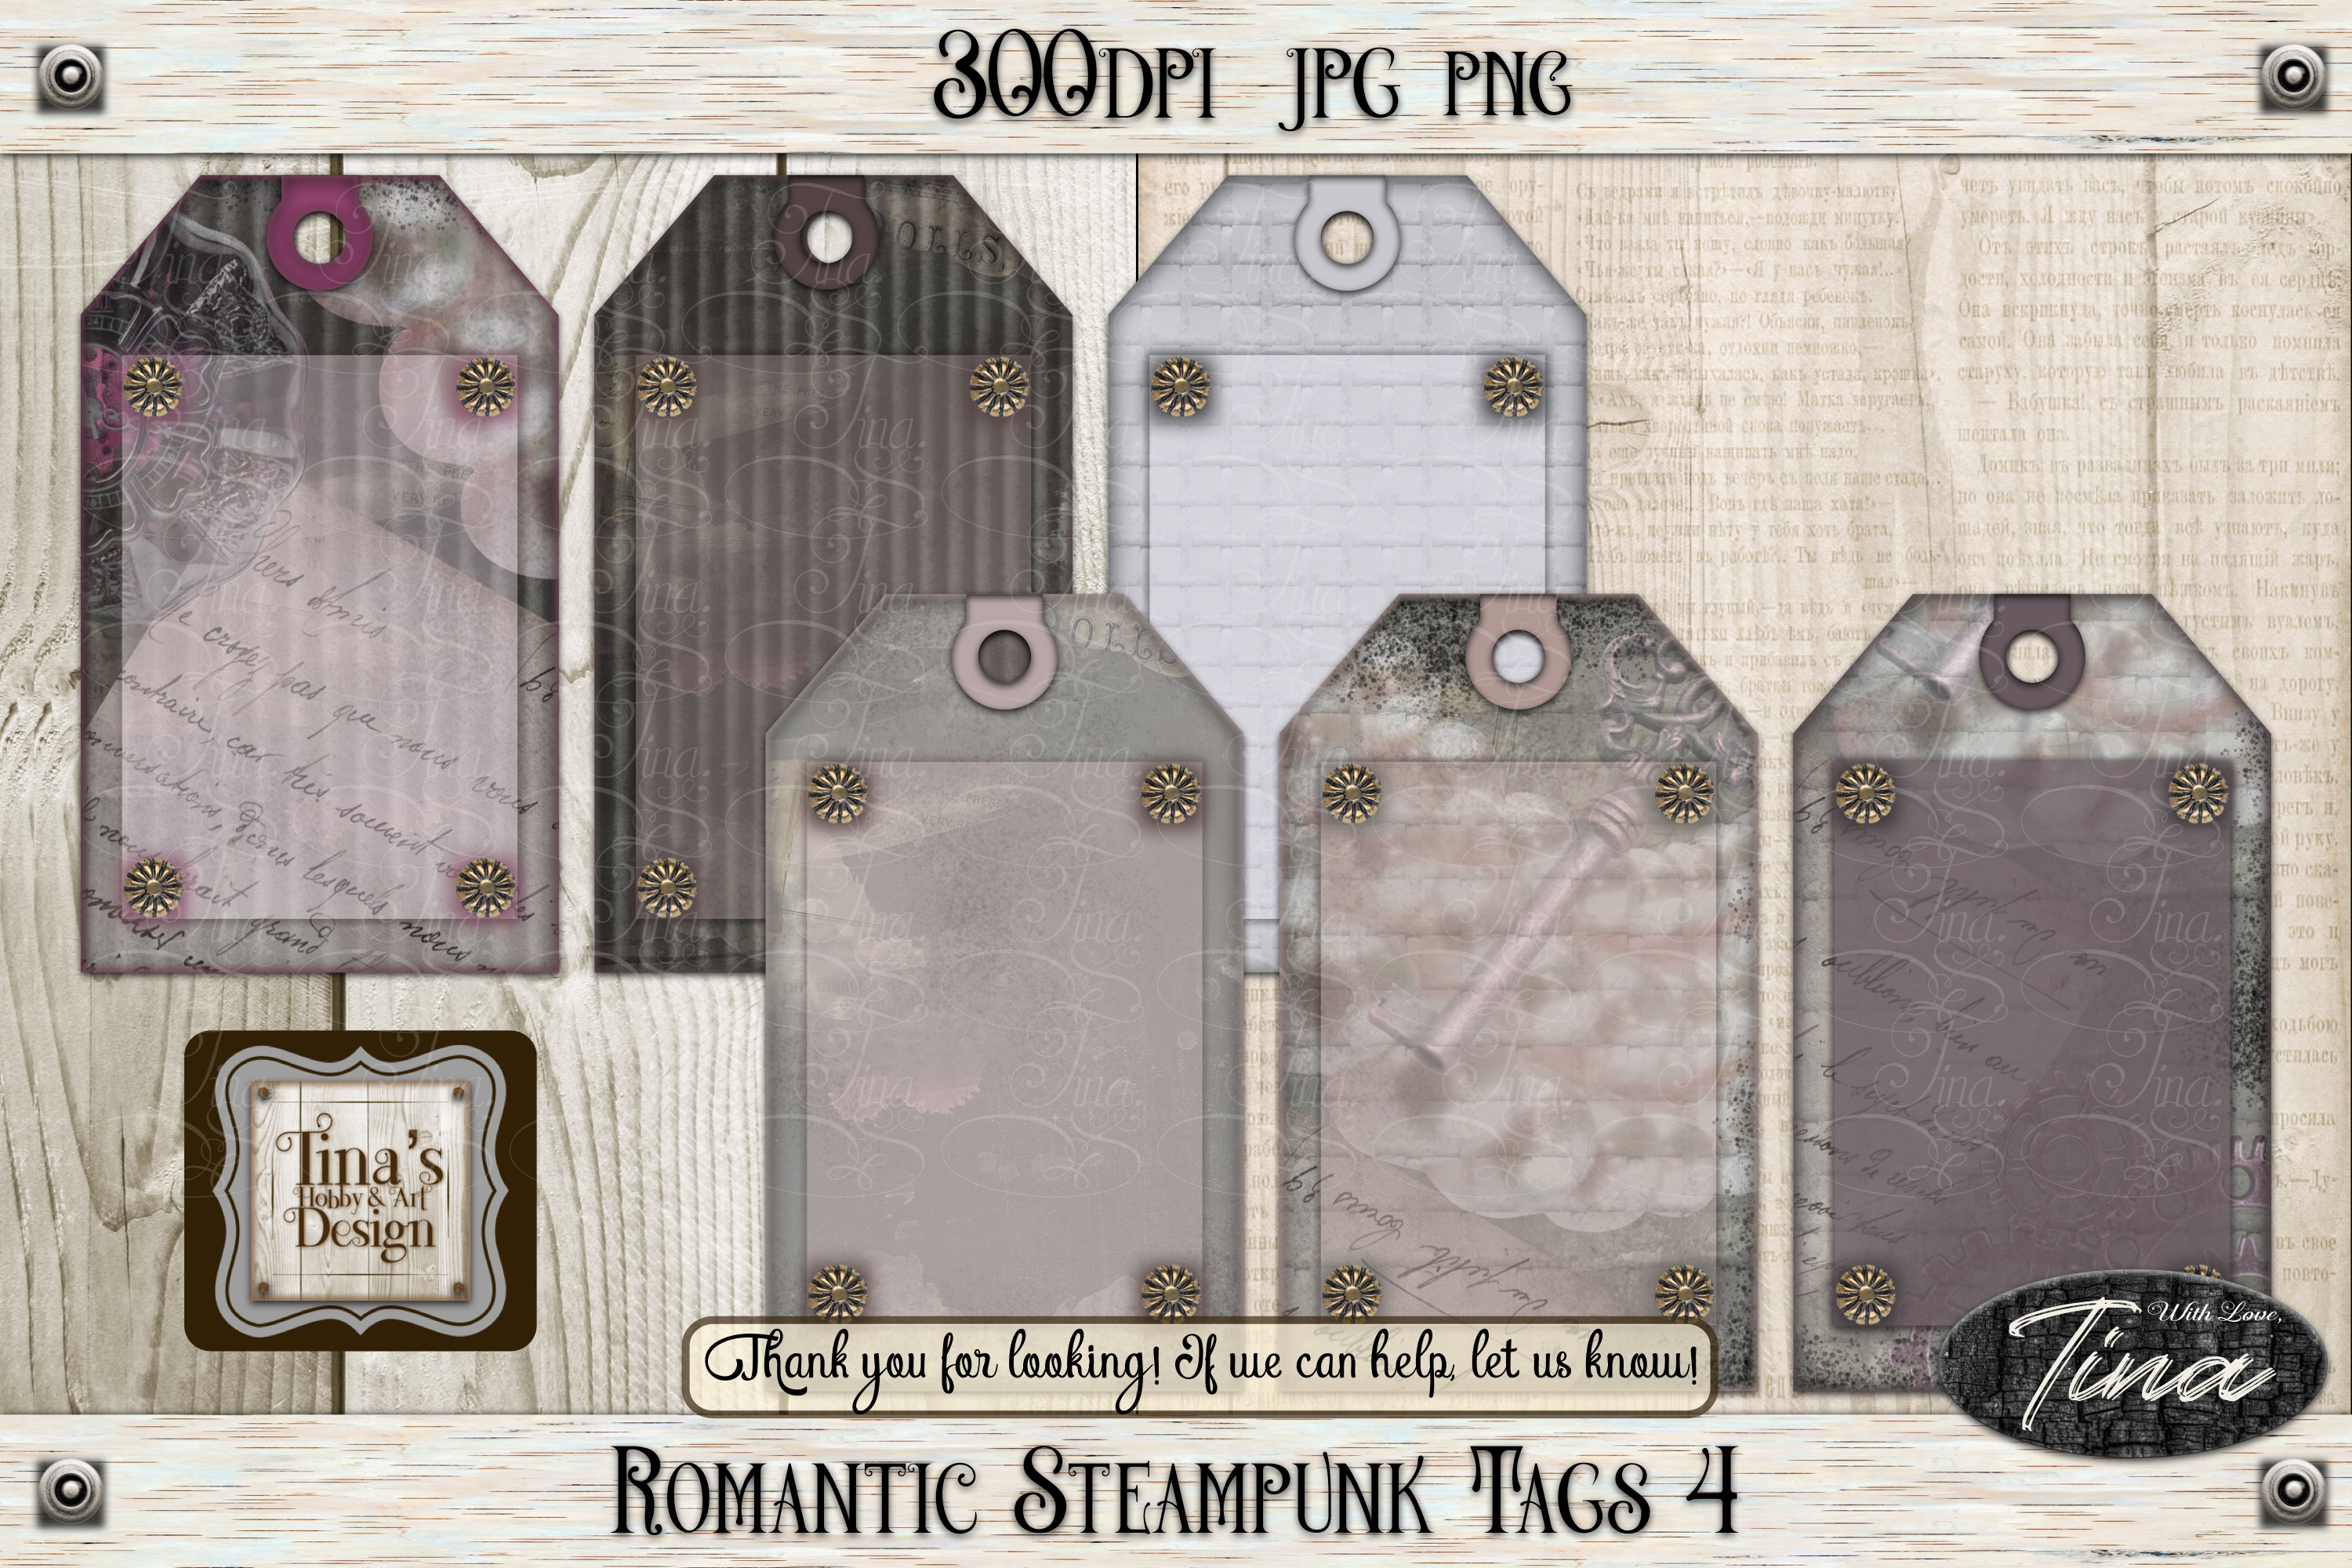 Romantic Steampunk 12 x 12 Collage Mauve Grunge 101918RS12 example image 5